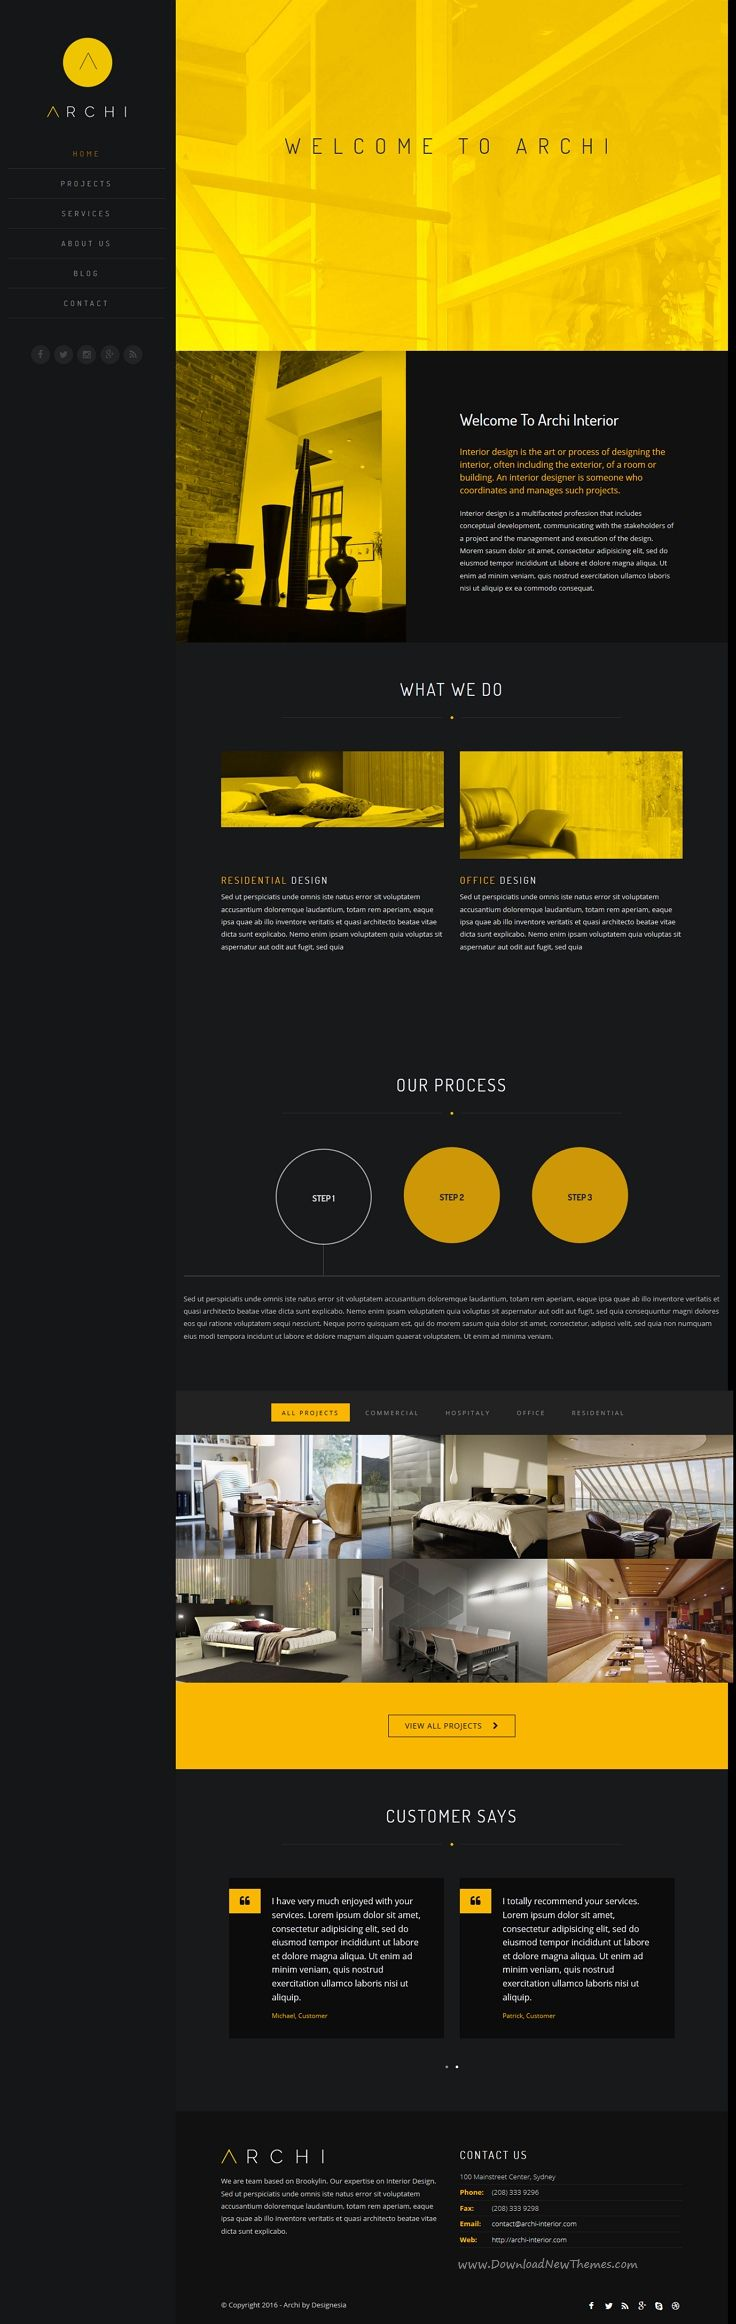 archi premium interior design drupal commerce theme